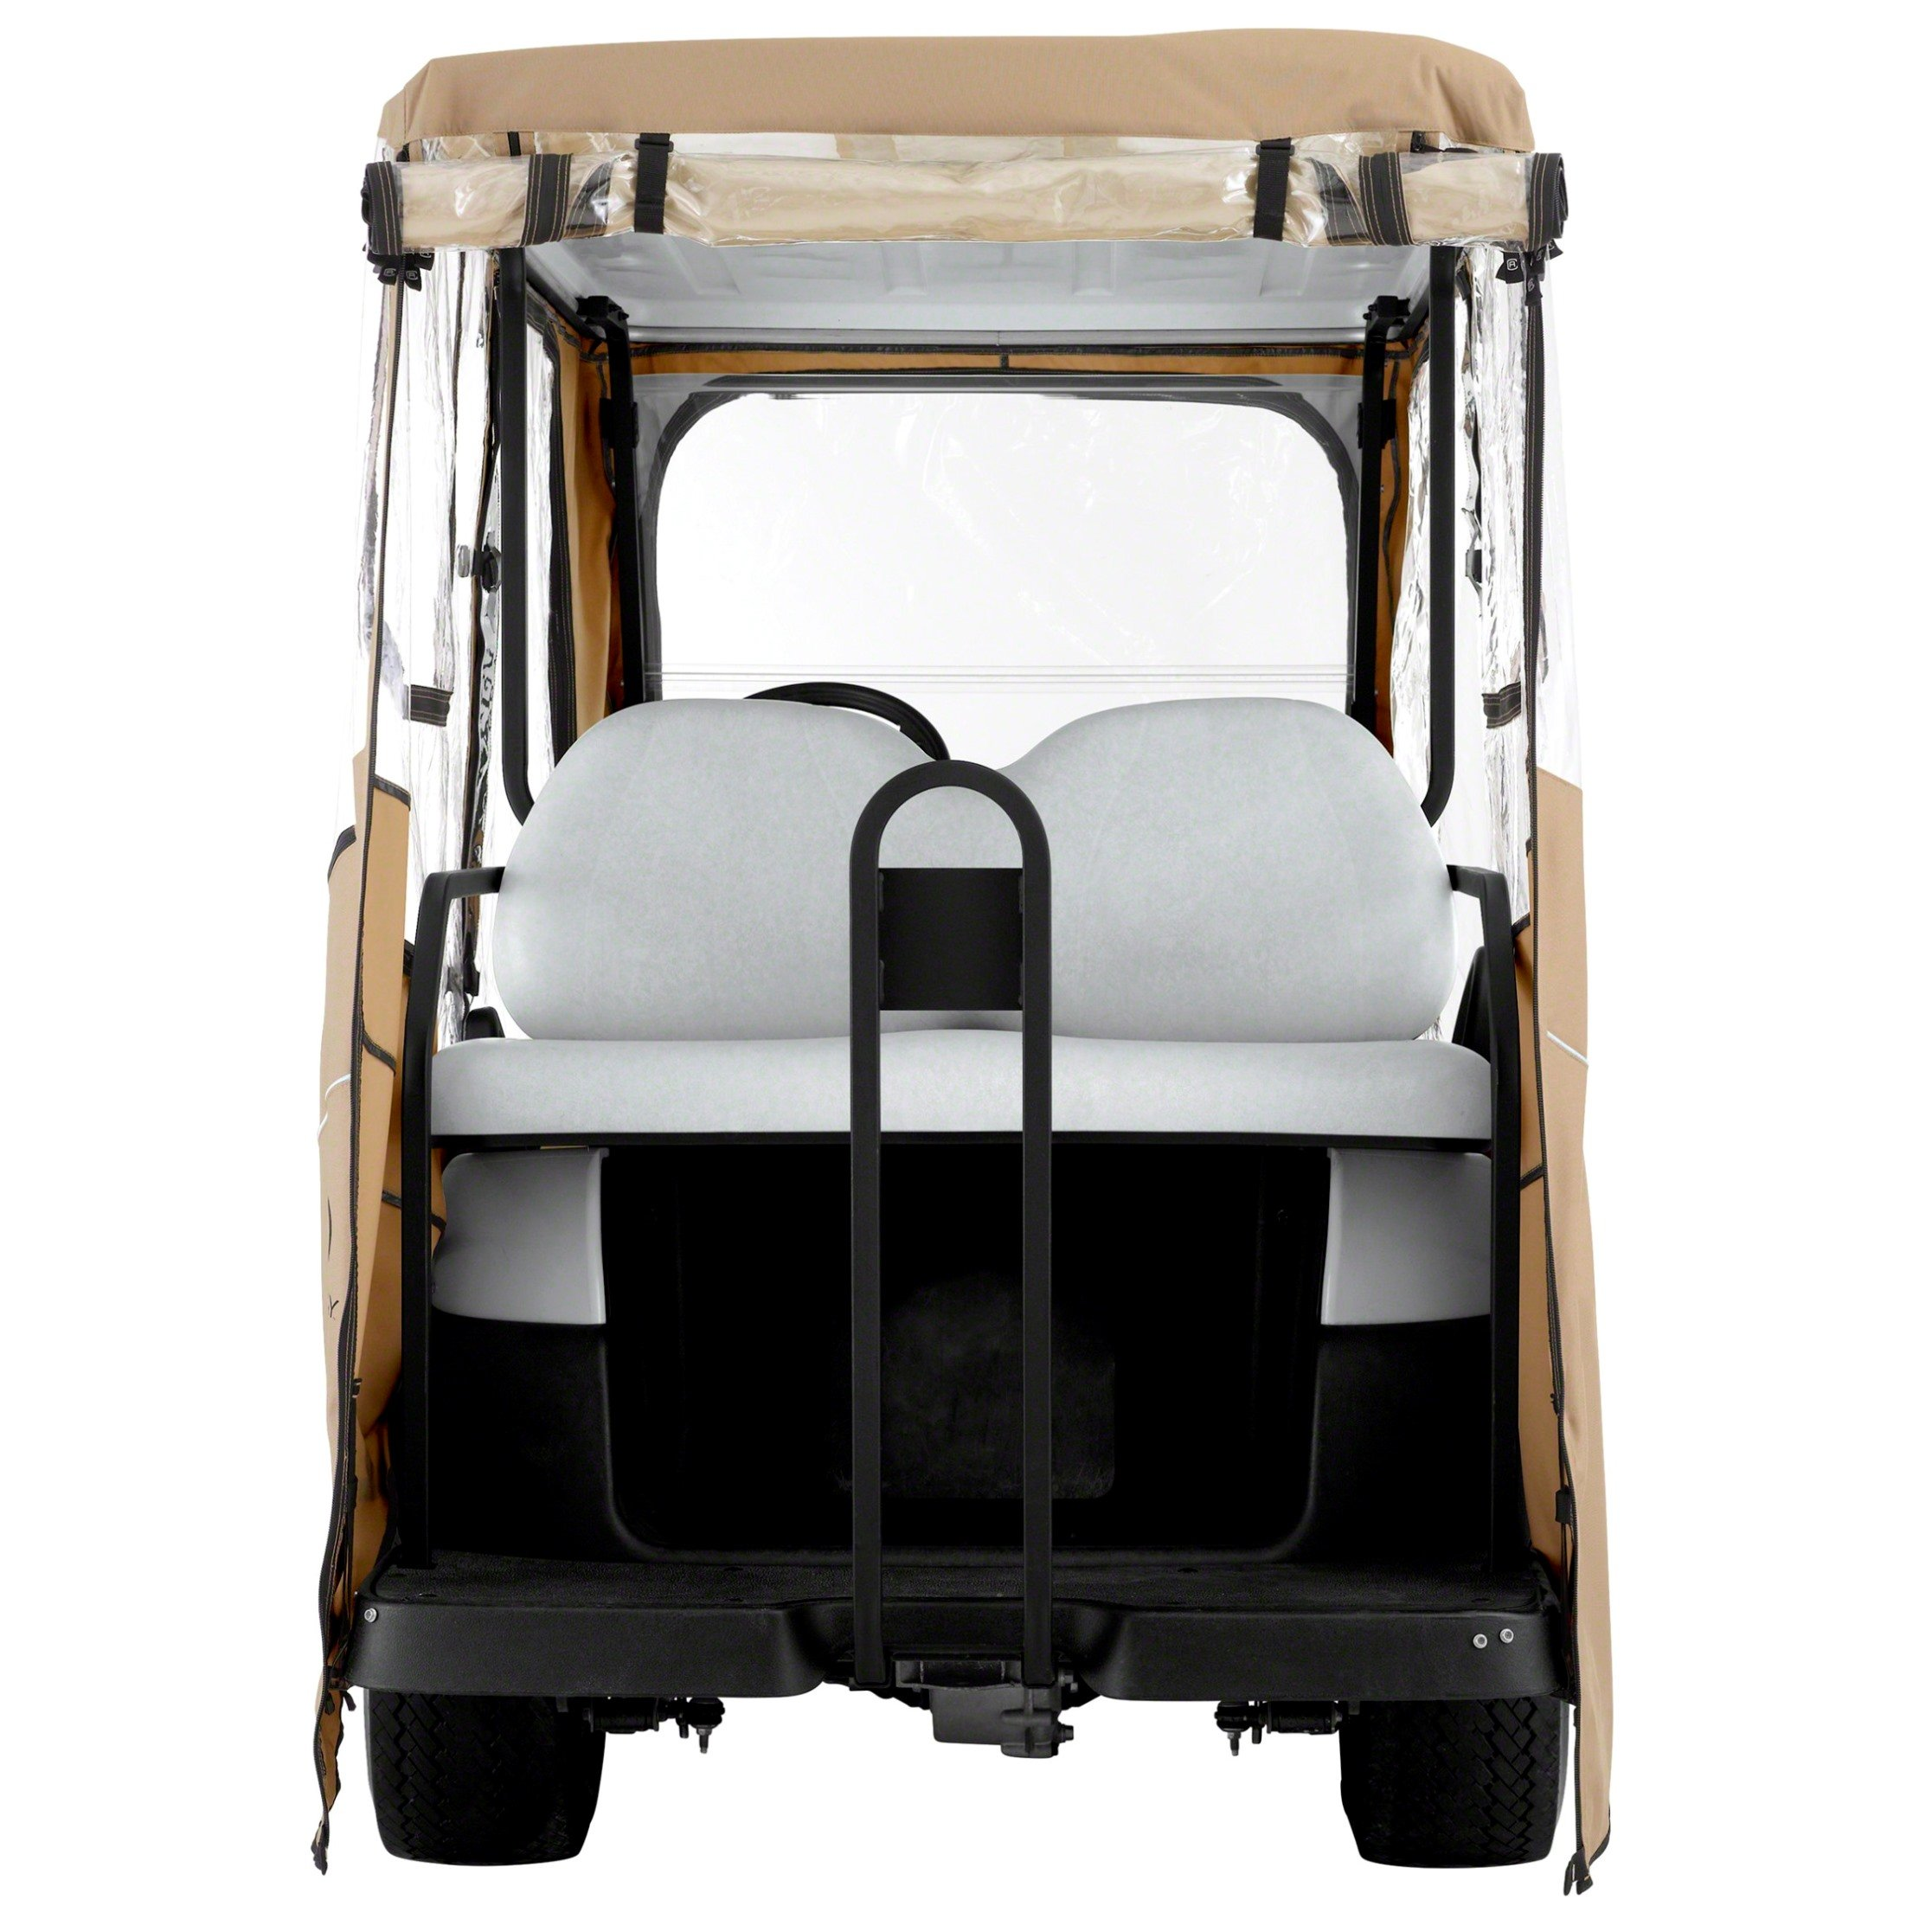 Classic Accessories Fairway Golf Cart Deluxe Enclosure, Khaki, Extra Long Roof by Classic Accessories (Image #3)